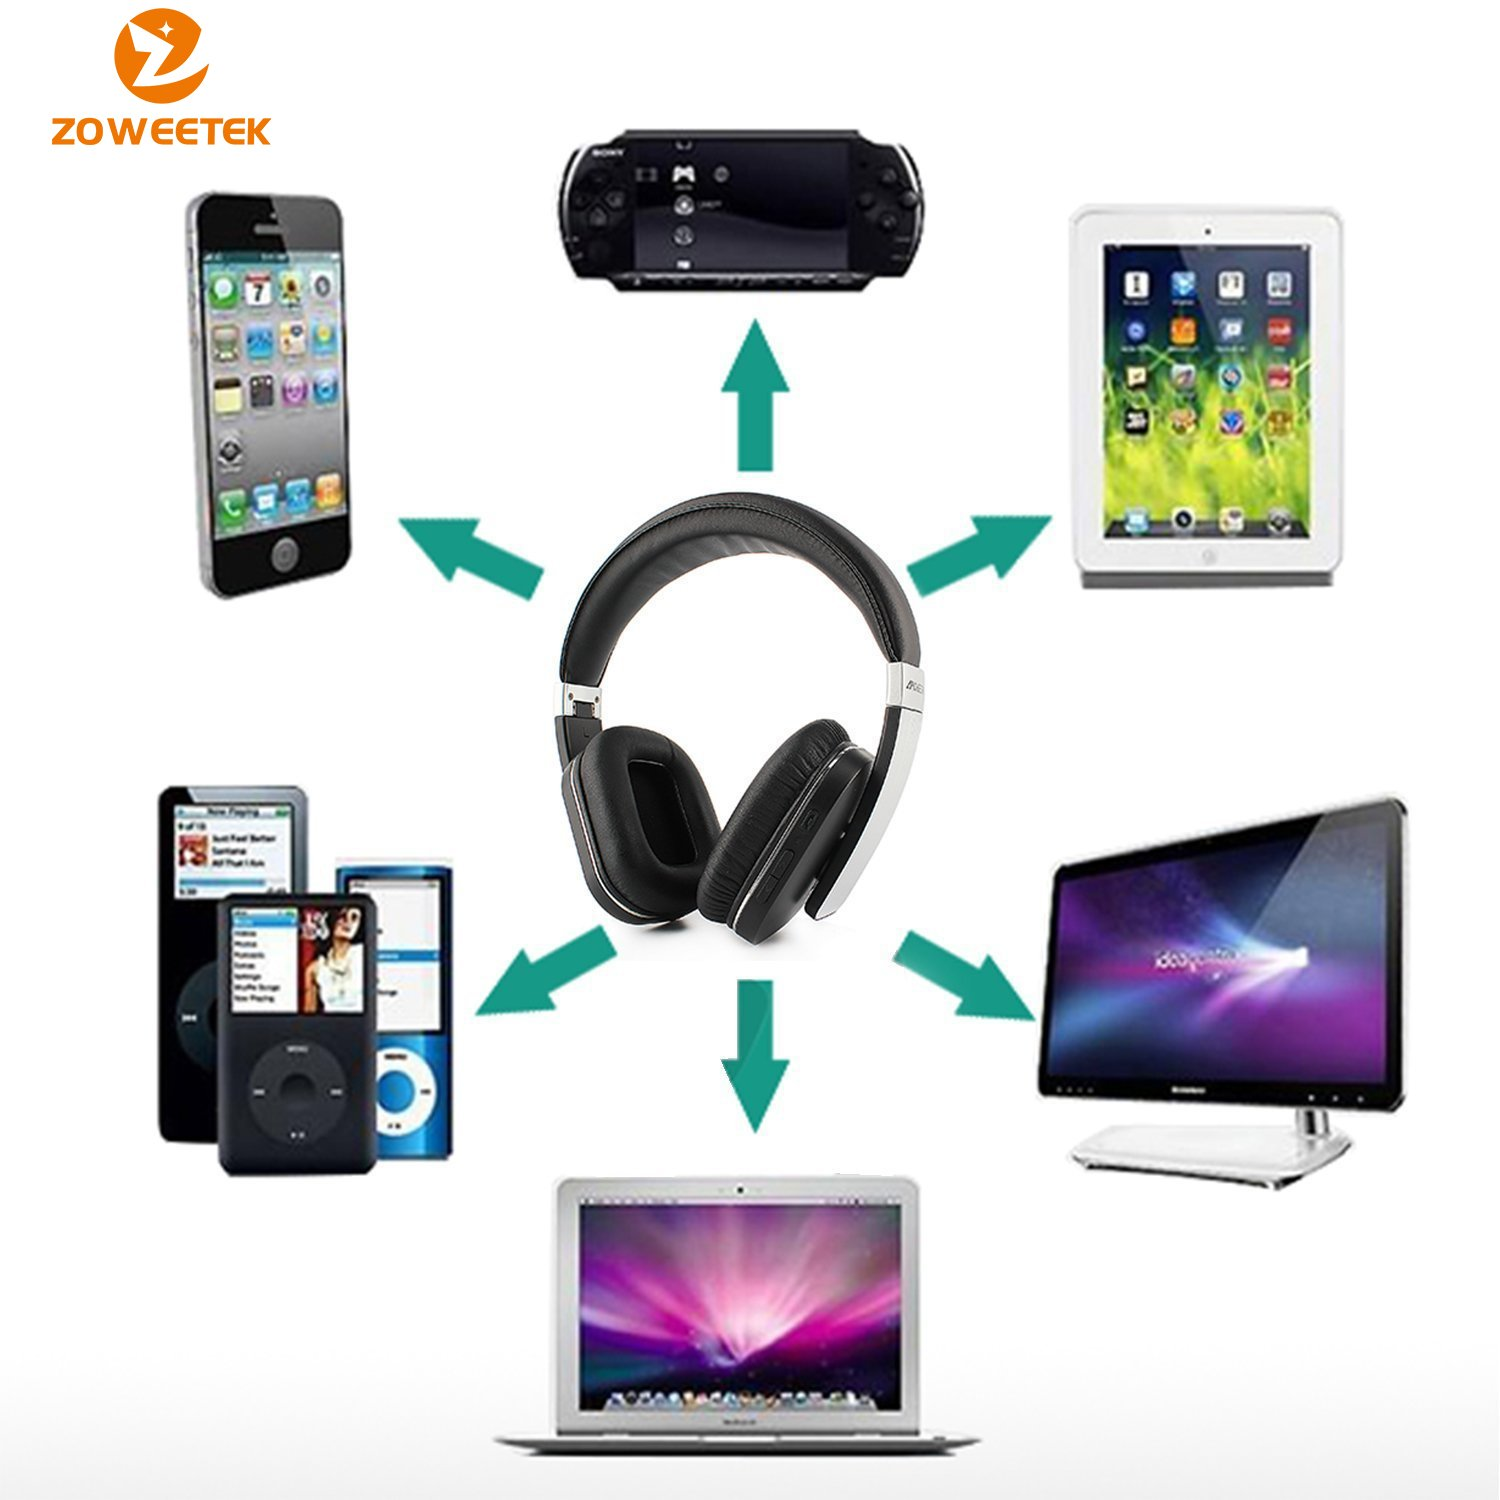 Zoweetek® Active Noise Cancelling Foldable Headphones with Microphone, Wireless Bluetooth 4.0 Over-Ear Stereo Headsets with Hi-Fi Sound for Phones, Tablets, PC, TV, MP3 / 4, Perfect for Travel, Running, Sports Headset